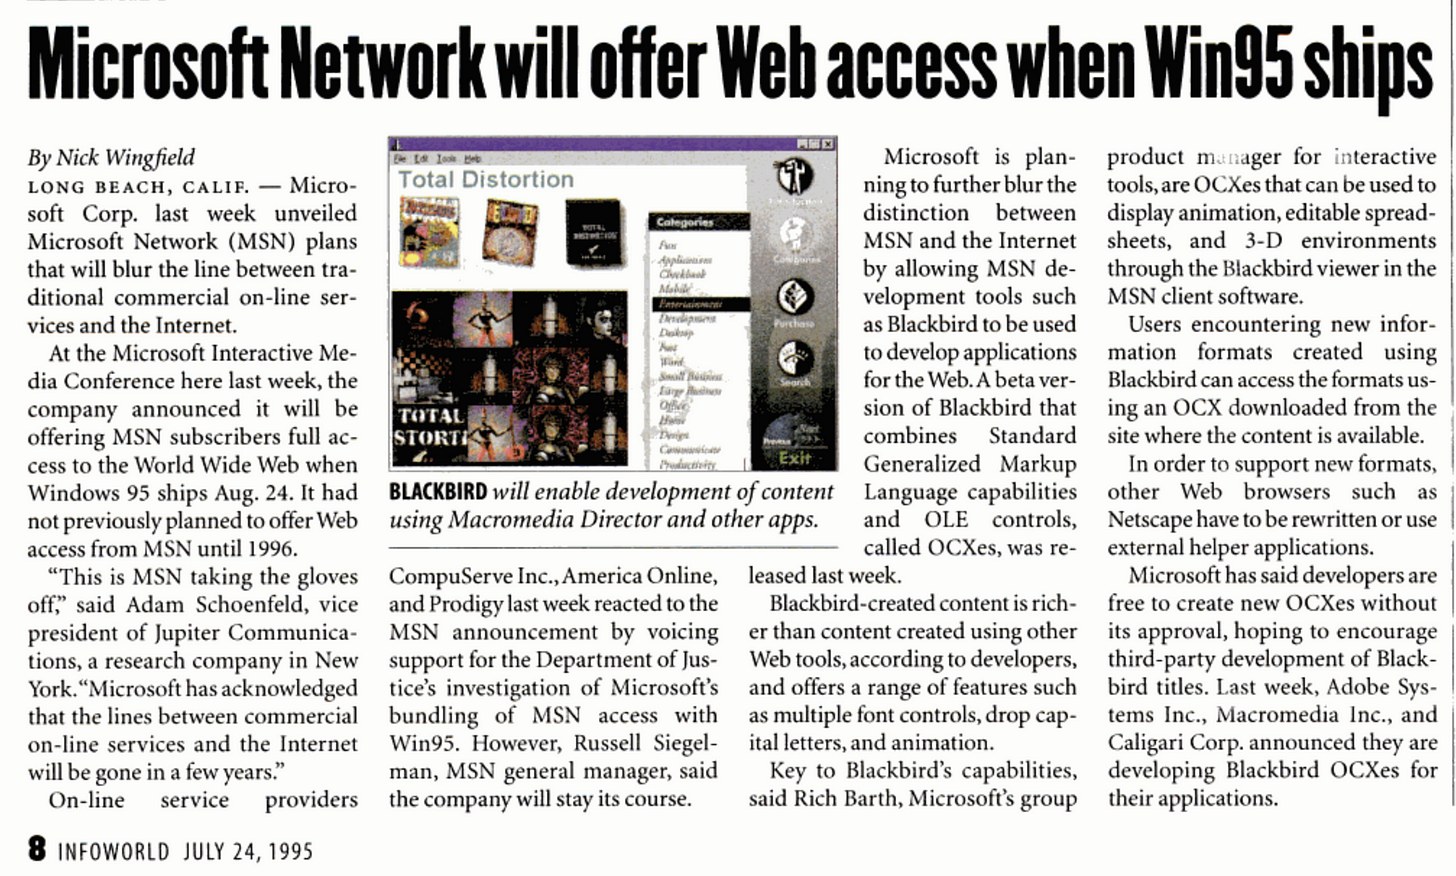 Infoworld from 4 weeks prior to Windows 95 availability, Microsoft Network will offer Web access when Win95 ships.